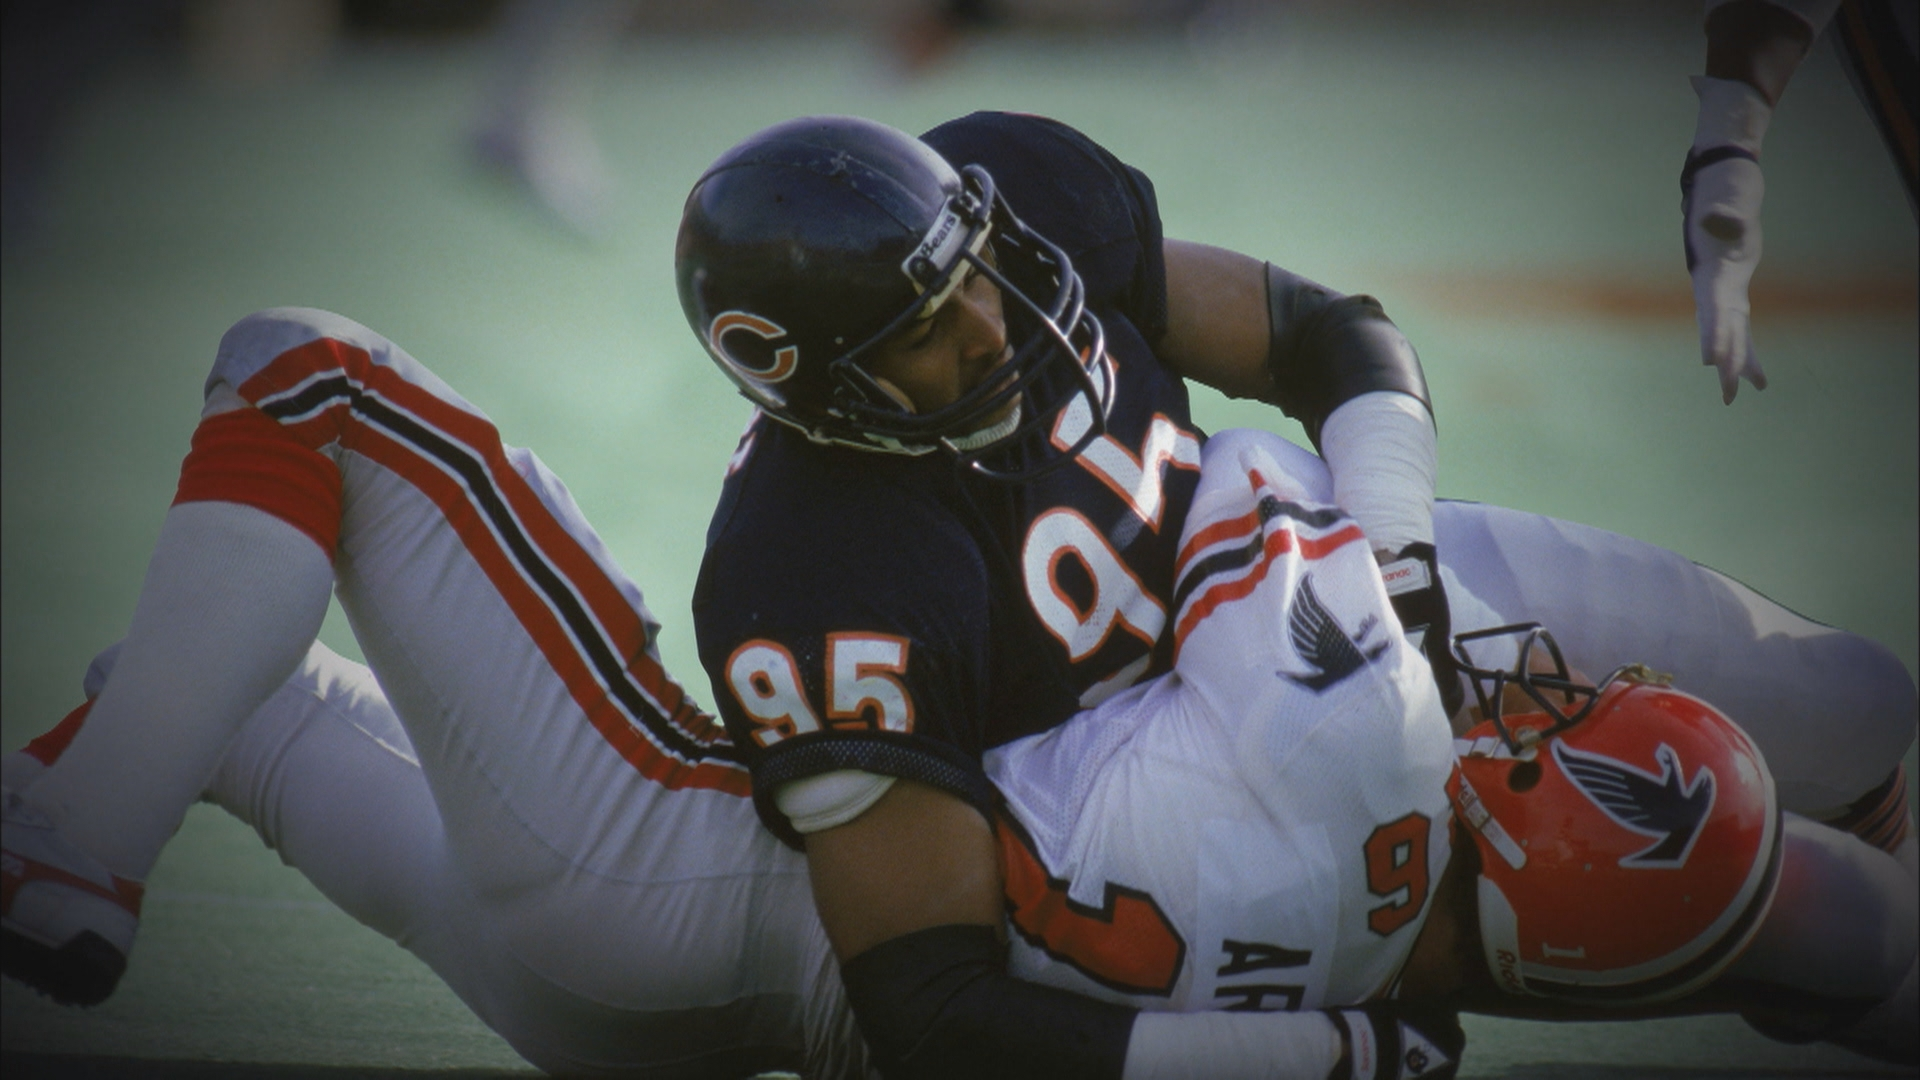 1985 bears point differential betting reddit mma betting line